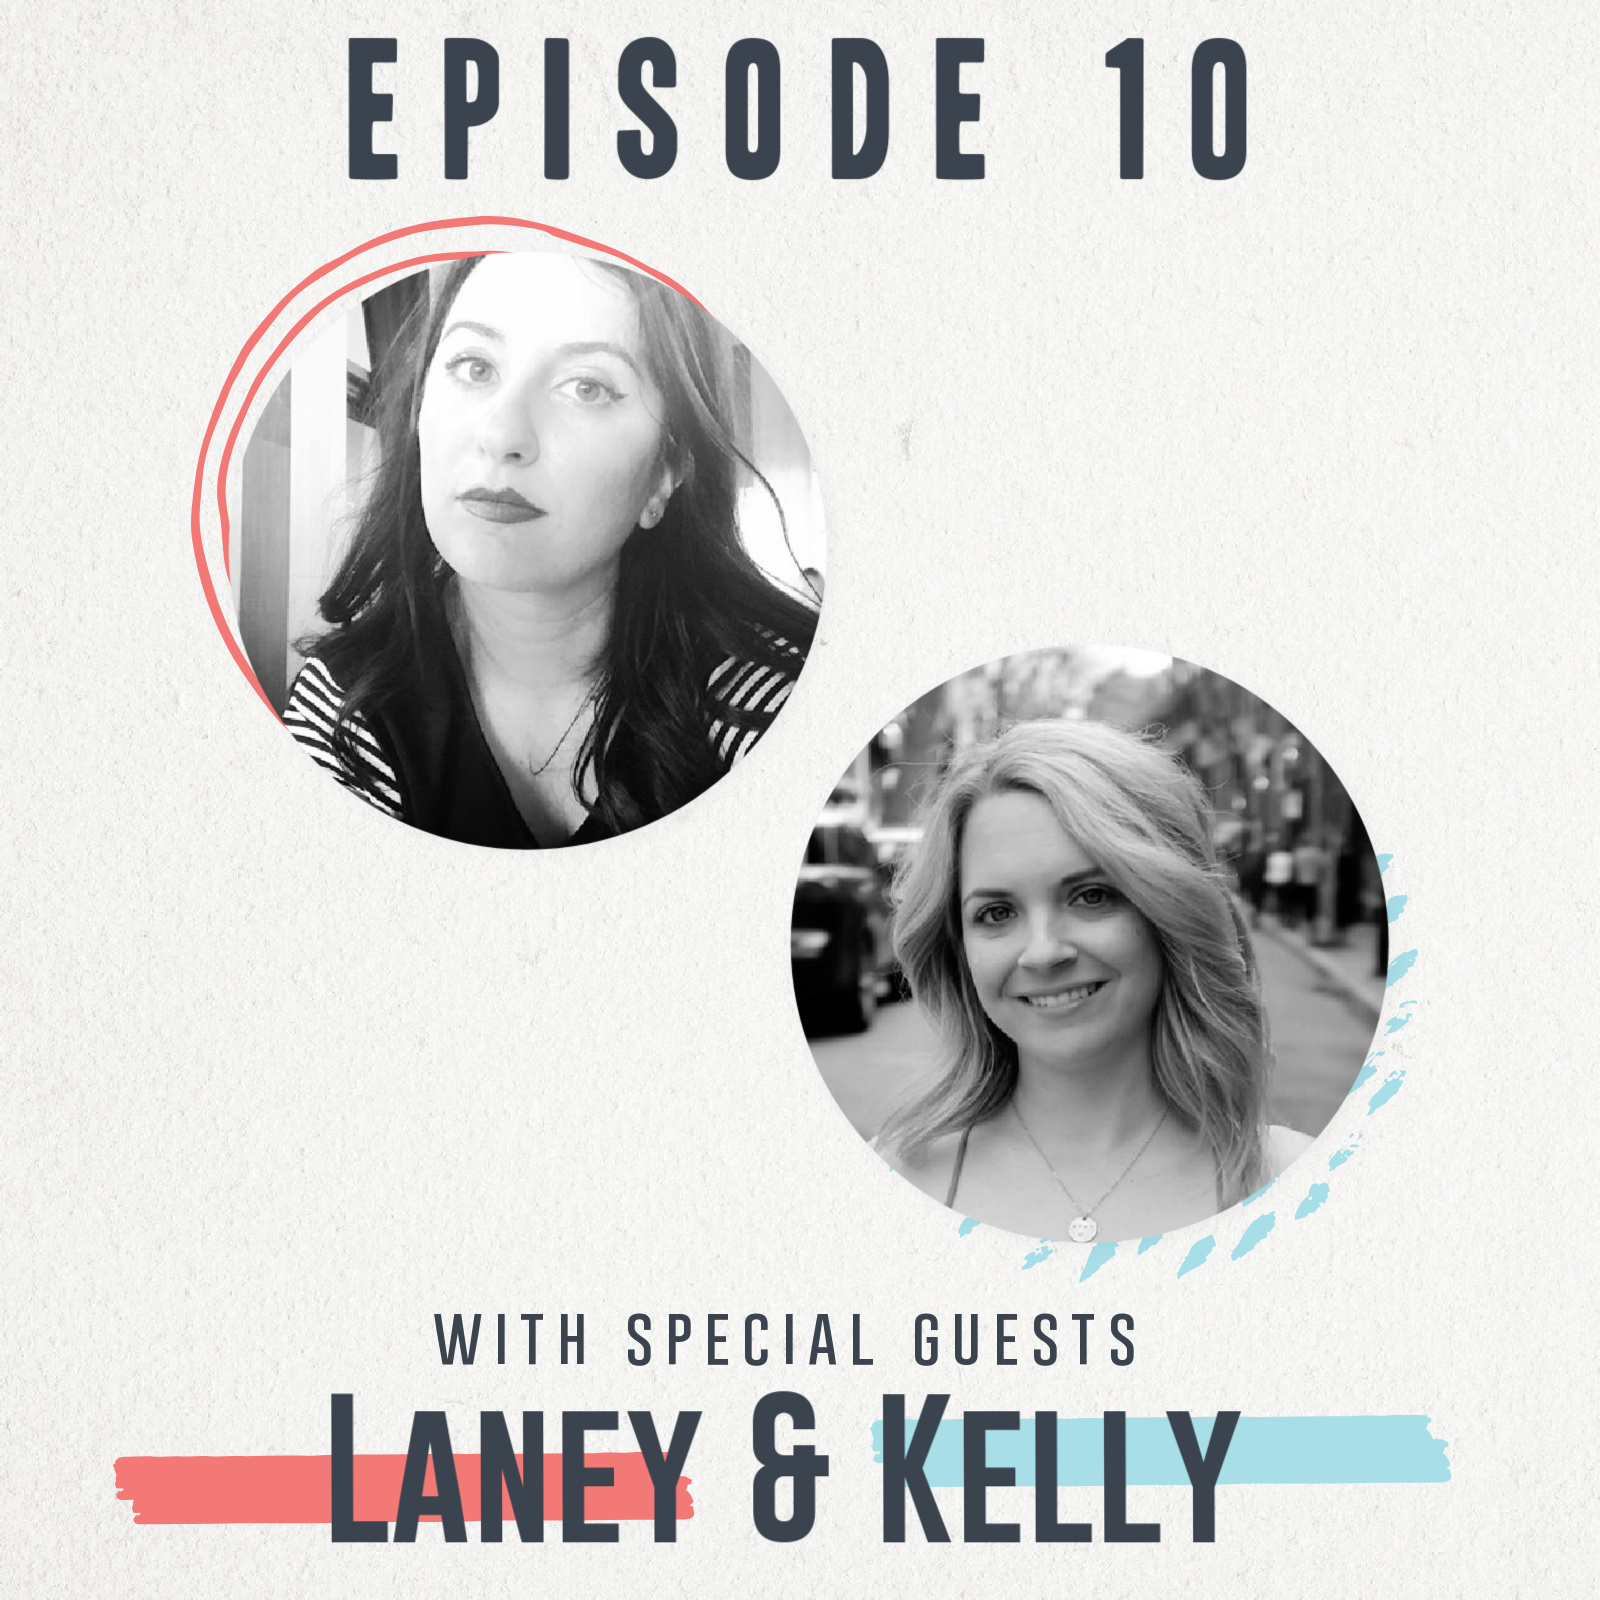 Ep. 10 Where to Park Your Car in Boston with special guests Laney and Kelly